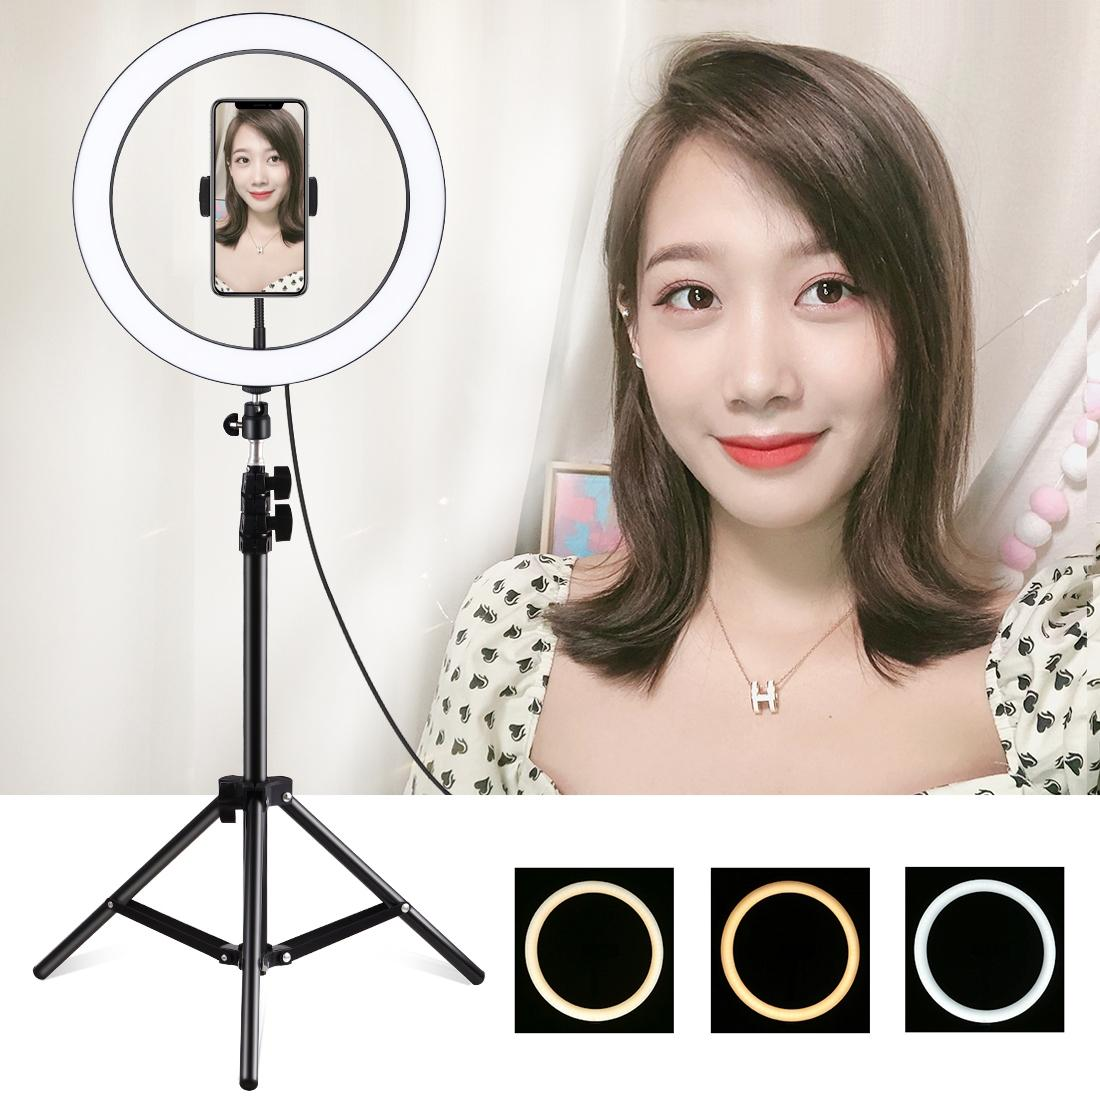 PULUZ 11.8 inch 30cm Light Dimmable LED Ring Vlogging Video Light Live Broadcast Kits with Cold Shoe Tripod Ball Head & Phone Clamp